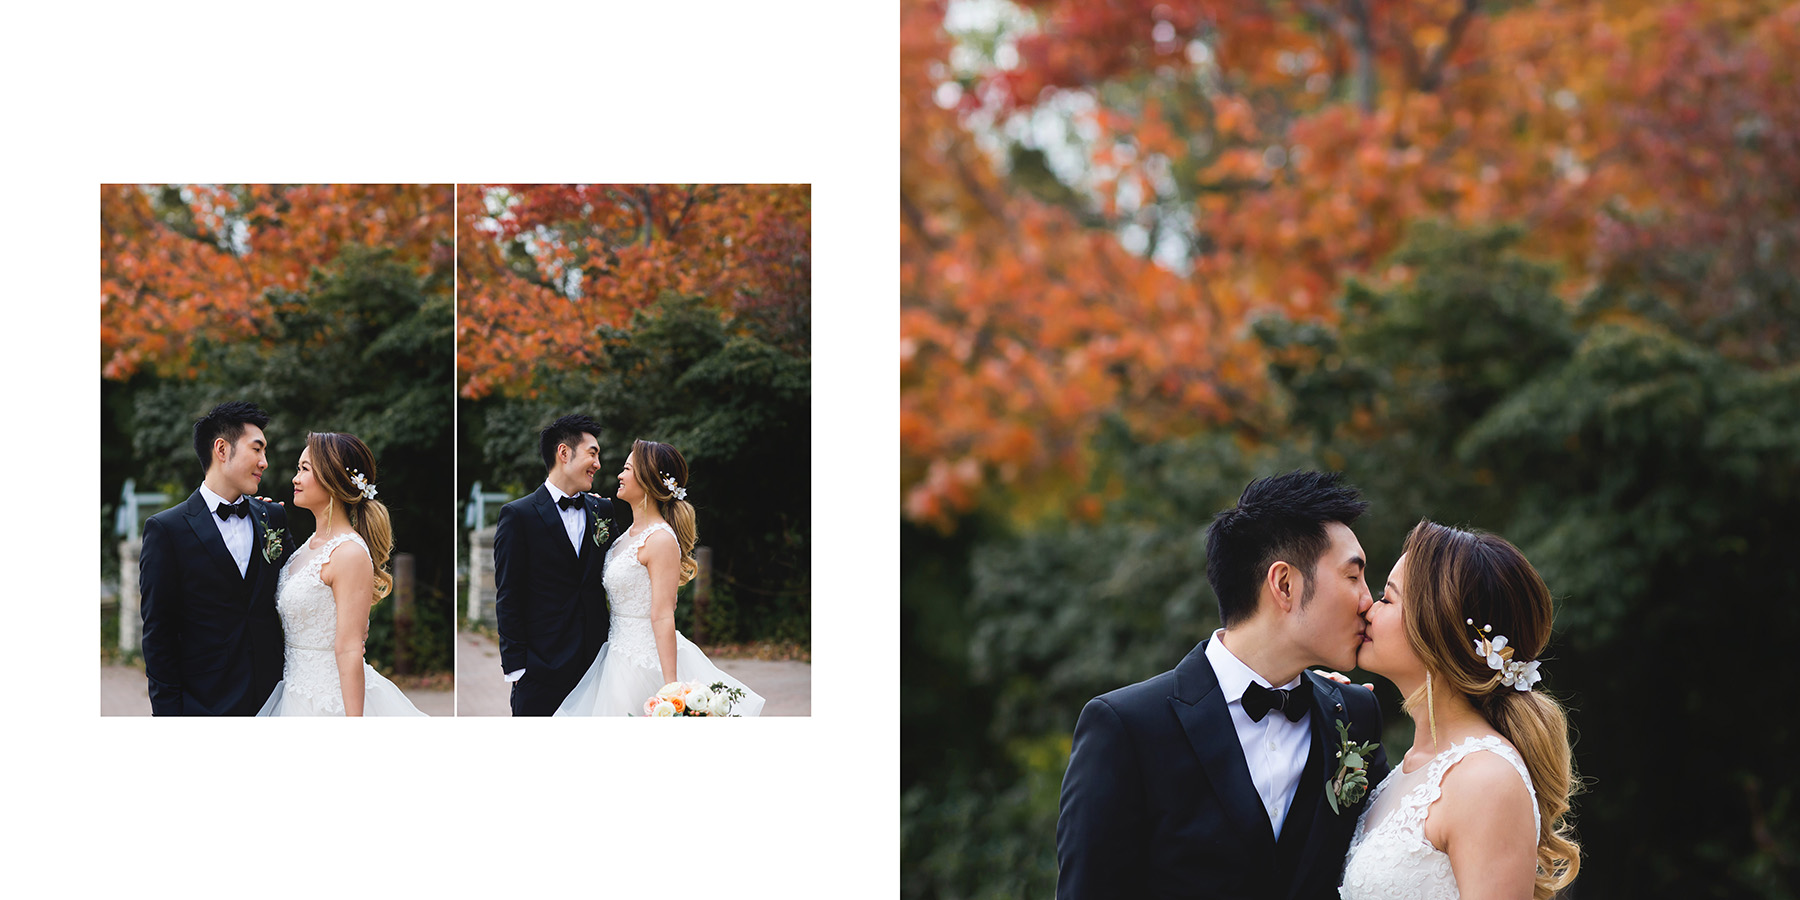 Tiffany_+_Matthew_-_Wedding_Album_16.jpg